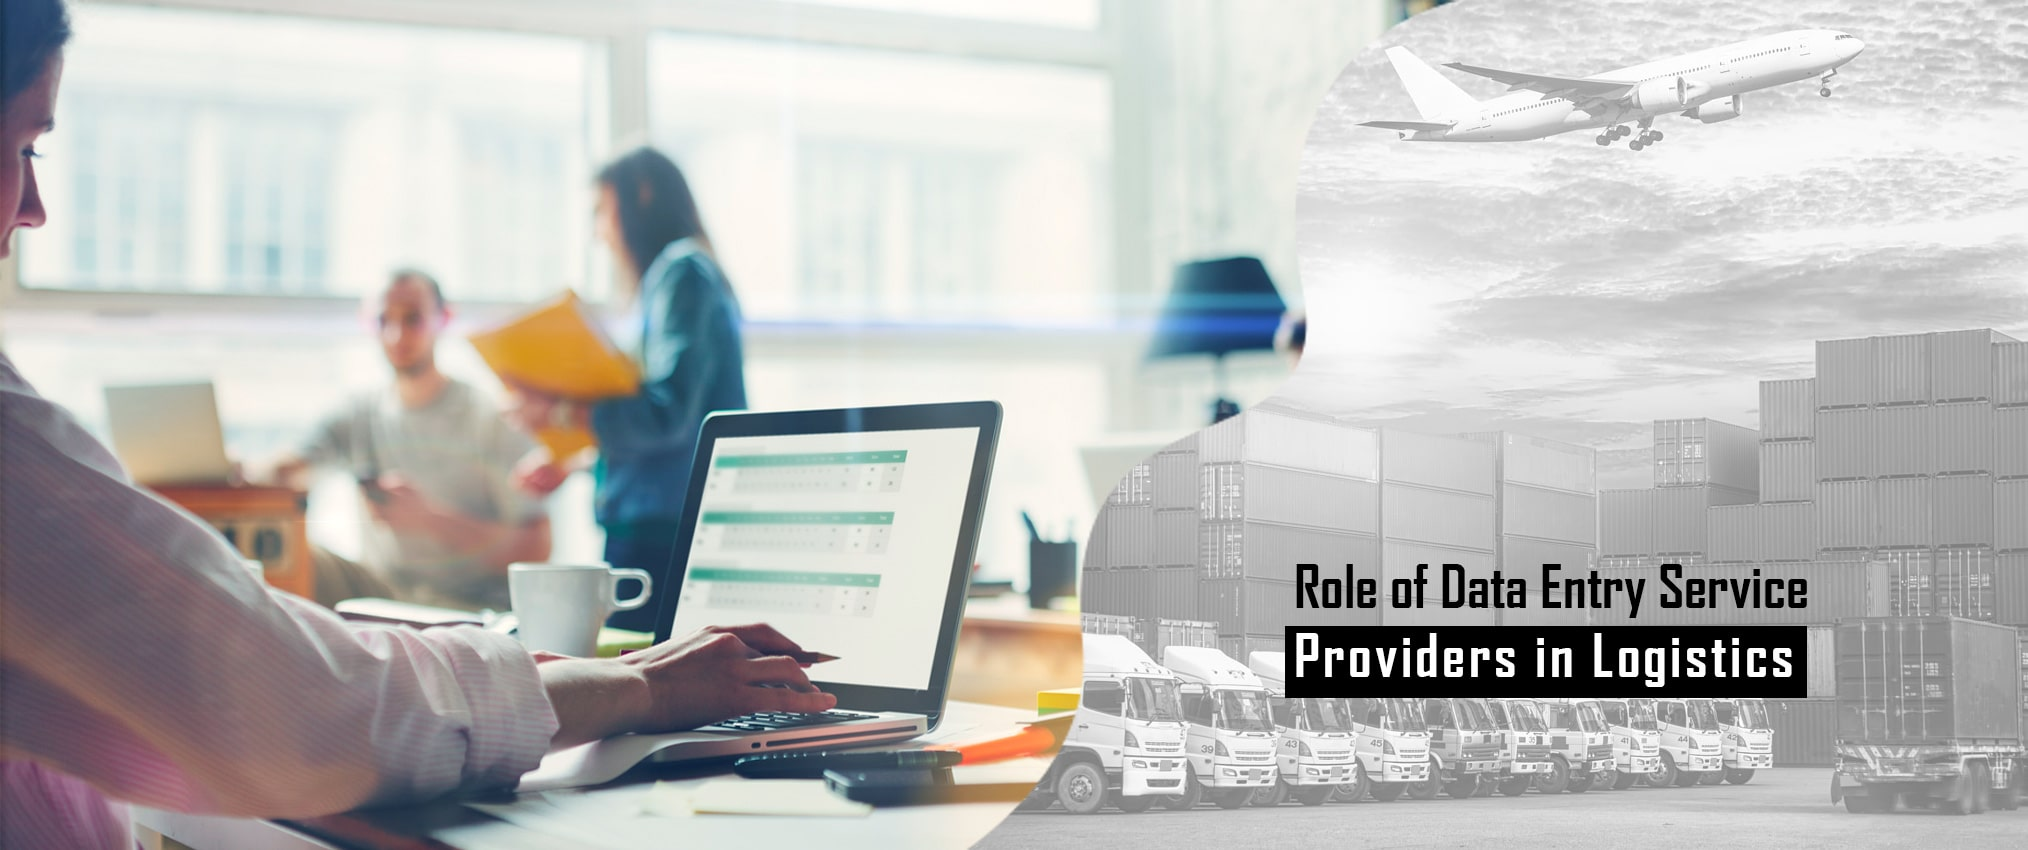 Role of Data Entry Service Providers in Logistics